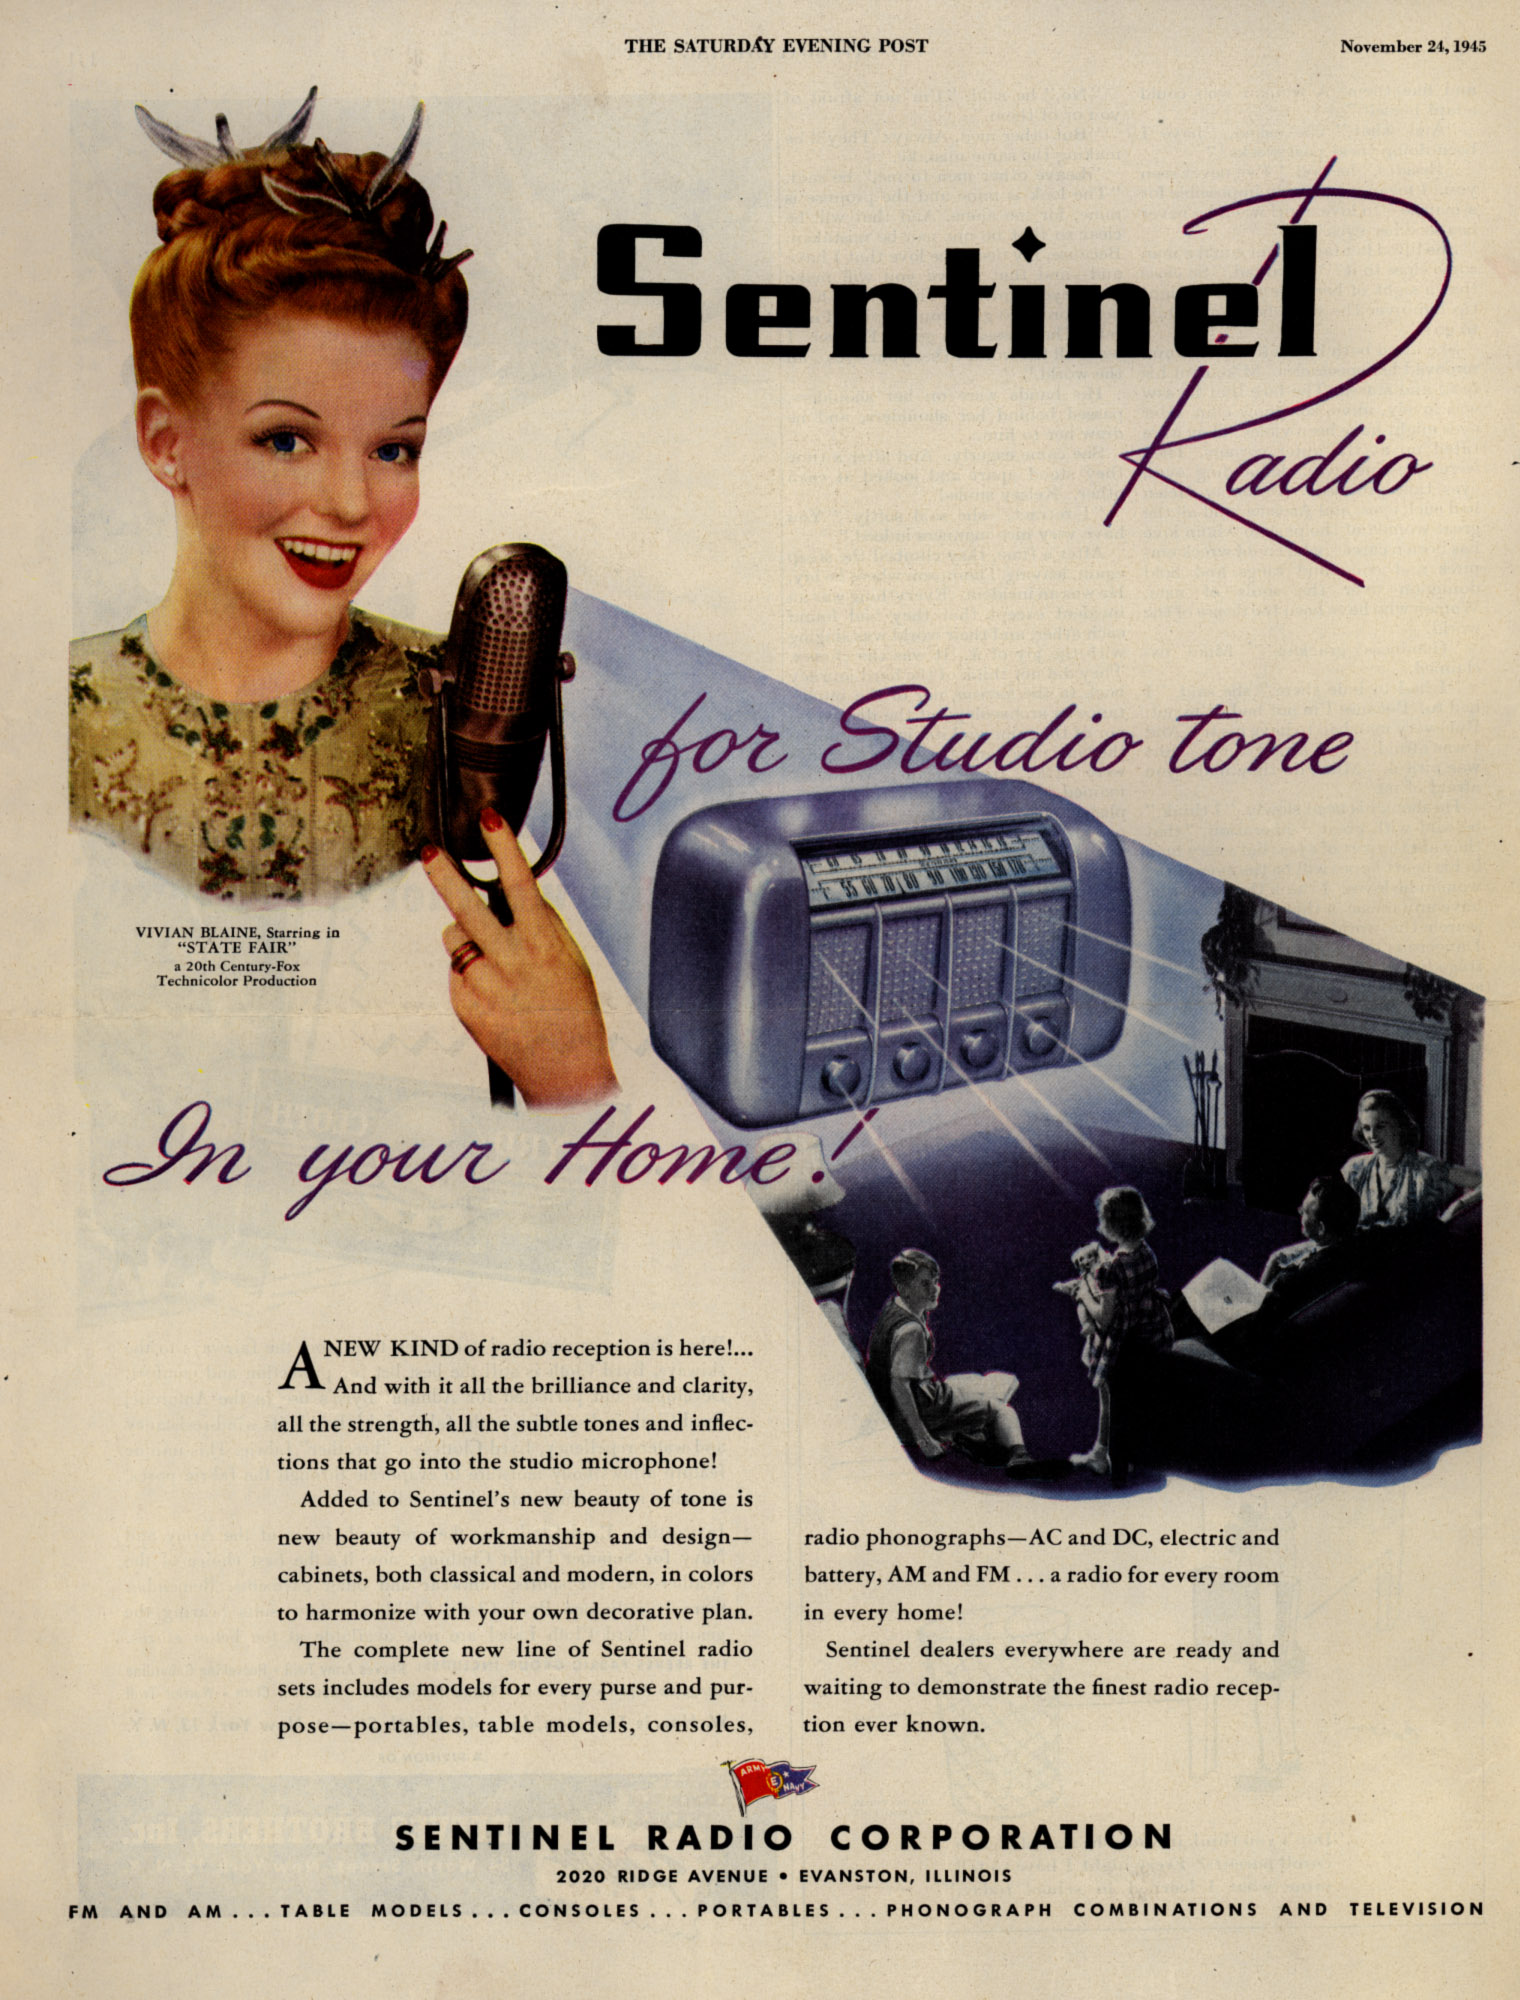 Sentinel_Radio_for_Studio_tone_In_your_Home